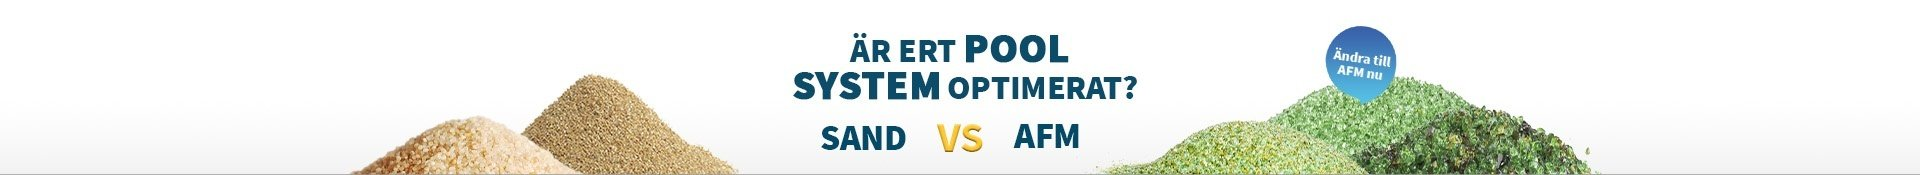 Optimize your pool